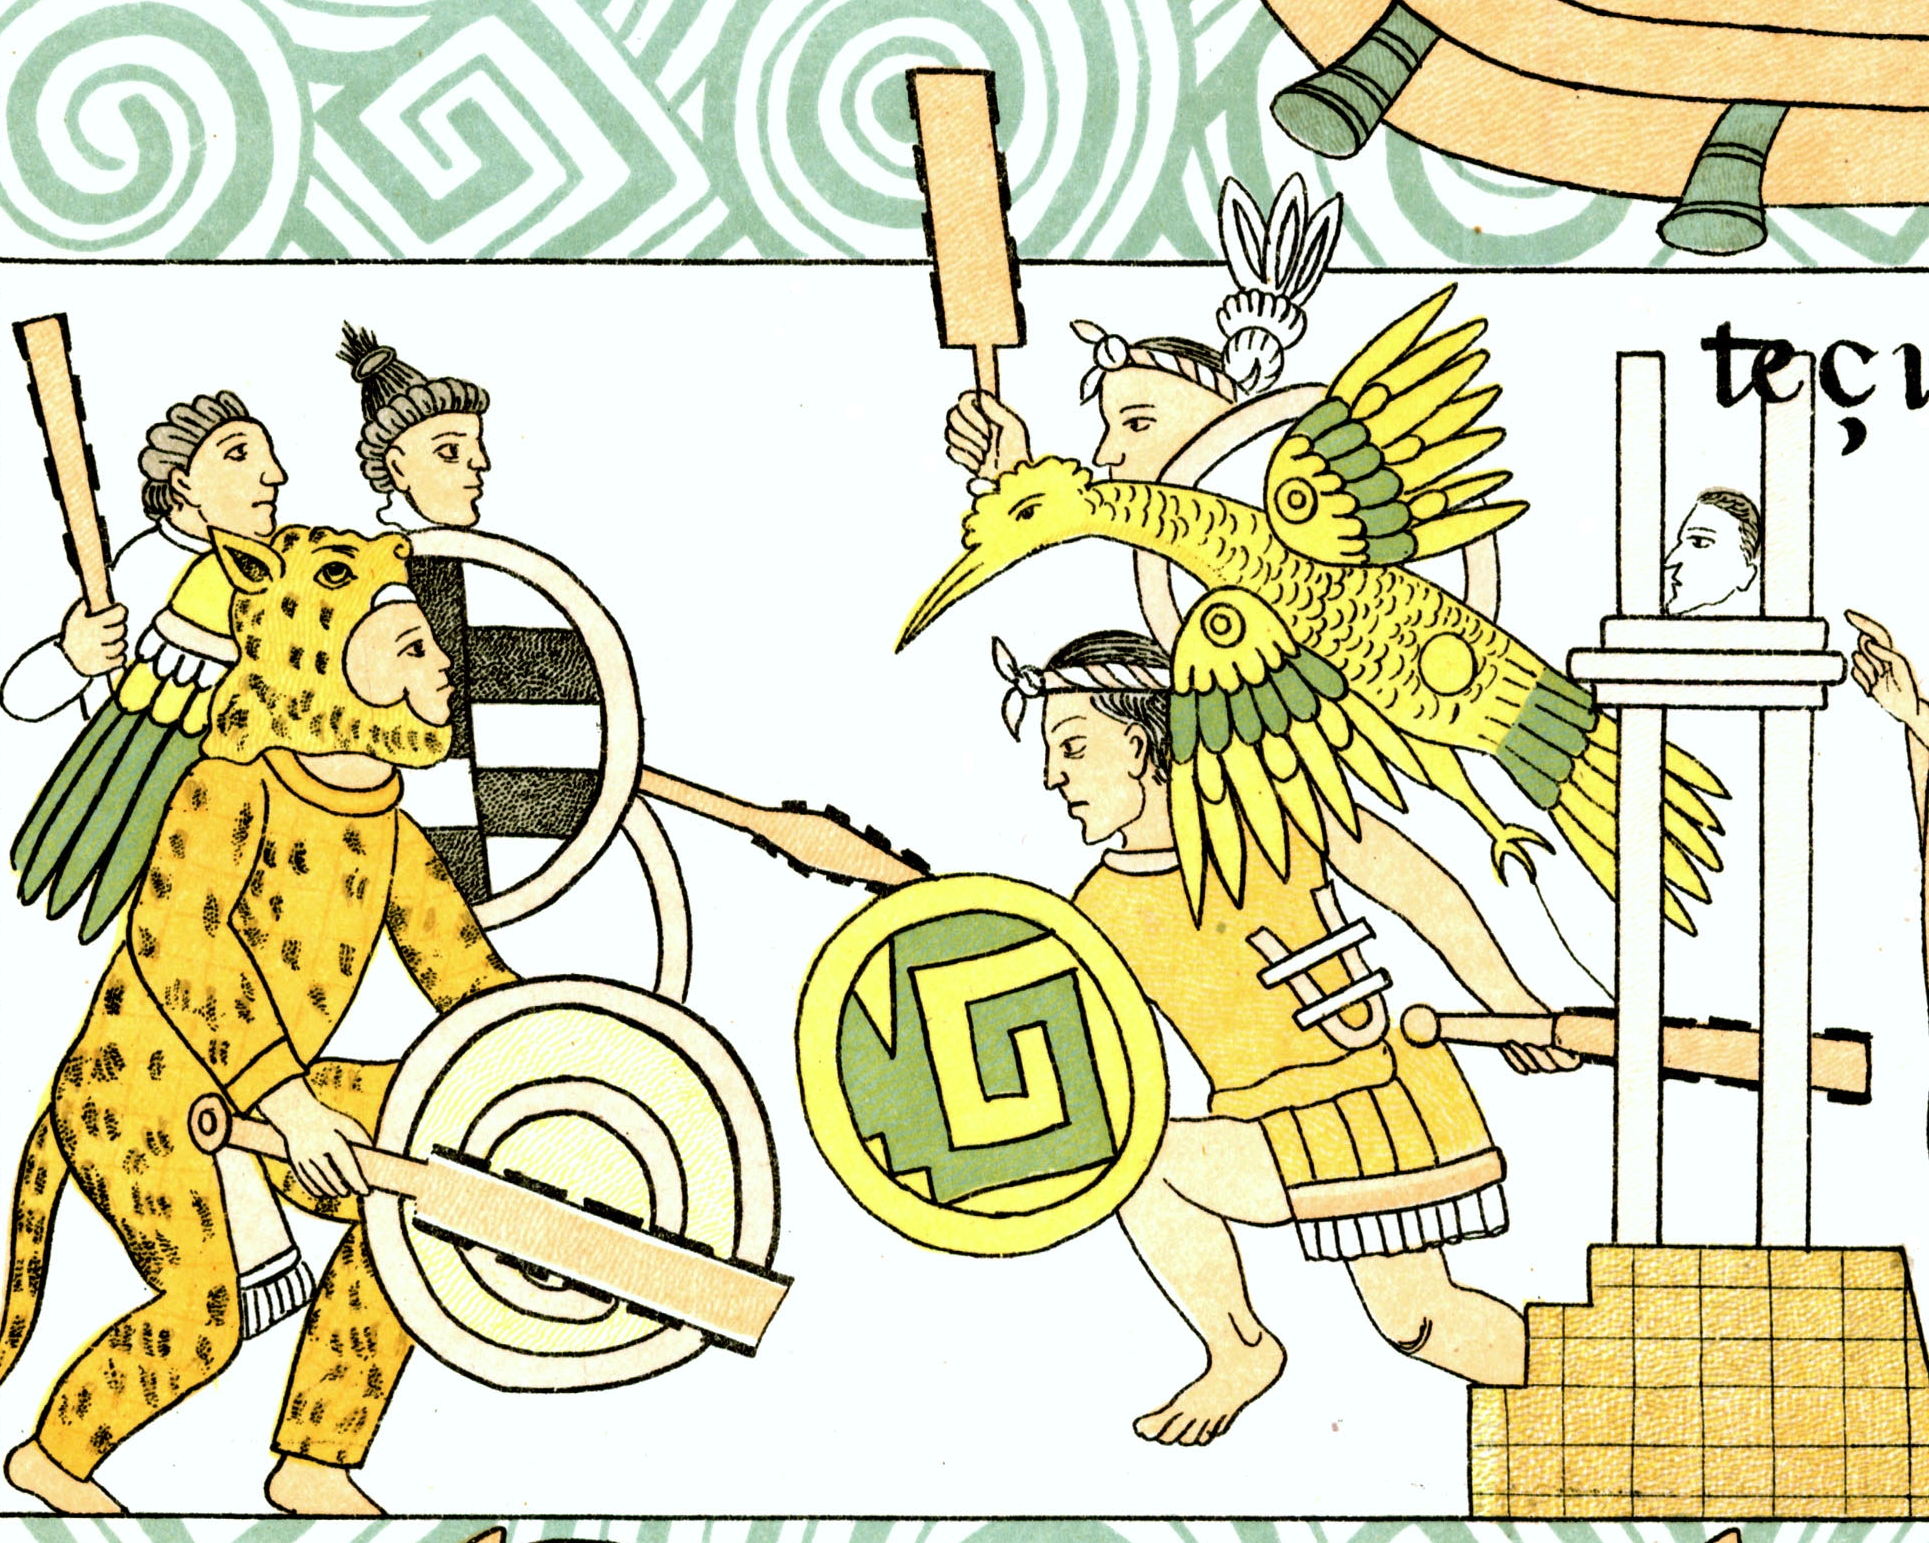 FIGURE 34. Battle scene from Cell 45 of the Lienzo de Tlaxcala; Aztec warriors fight on the left and Tlaxcalan warriors fight on the right. They are armed with obsidian-bladed swords and an obsidian-bladed thrusting spear. On the left, one of the Aztec warrior looks out from inside the jaws of his jaguar headdress. On the right, one of the Tlaxcalan warriors wears the golden Eagle battle standard of Ocotelolco.